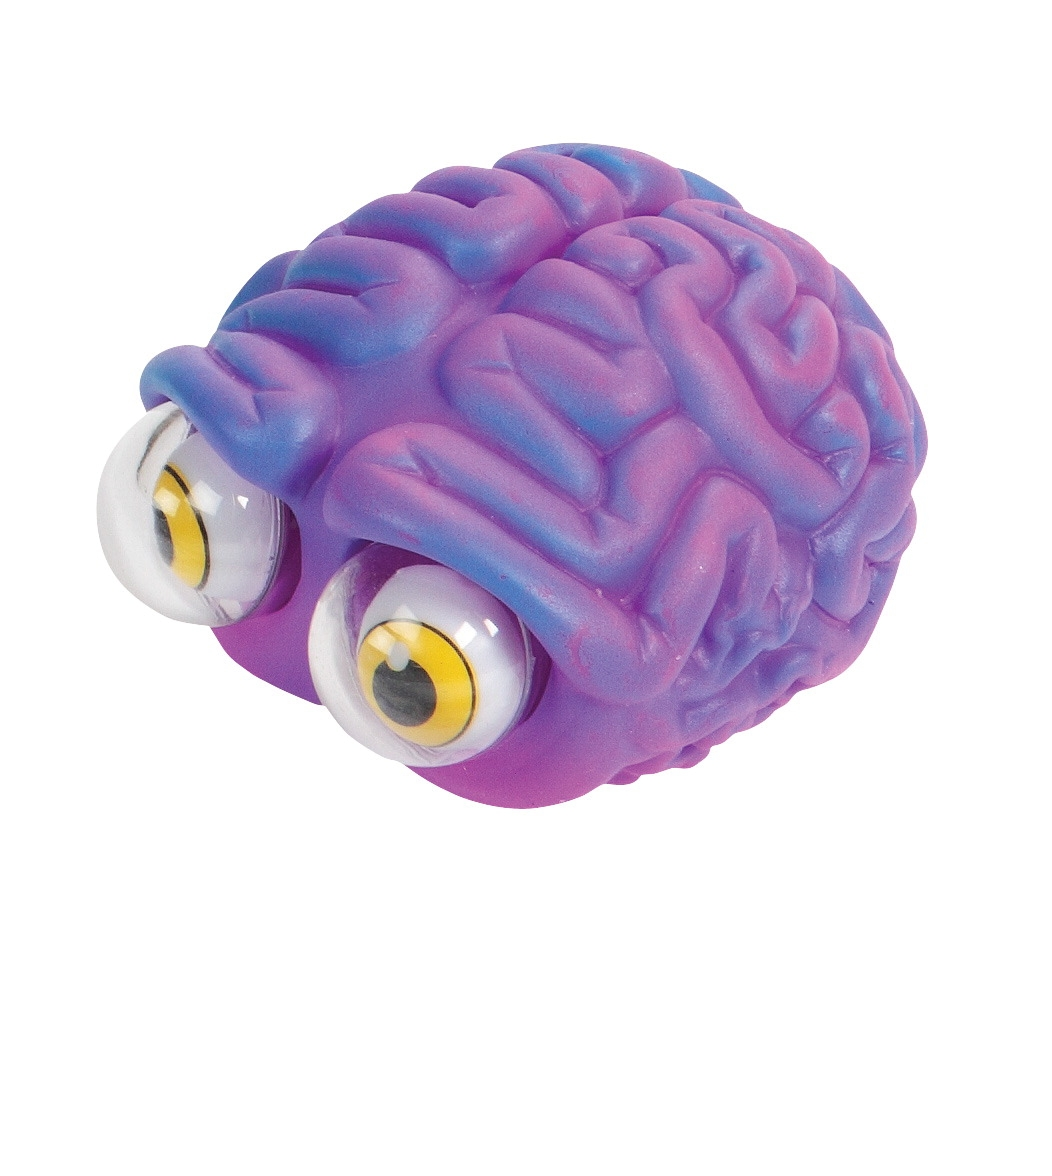 Toys Fine Motor Dressing Tools - 1361961 - Warm Fuzzy Toys Poppin' Peeper Brain Fidget Toy; 3 Inches 1361961